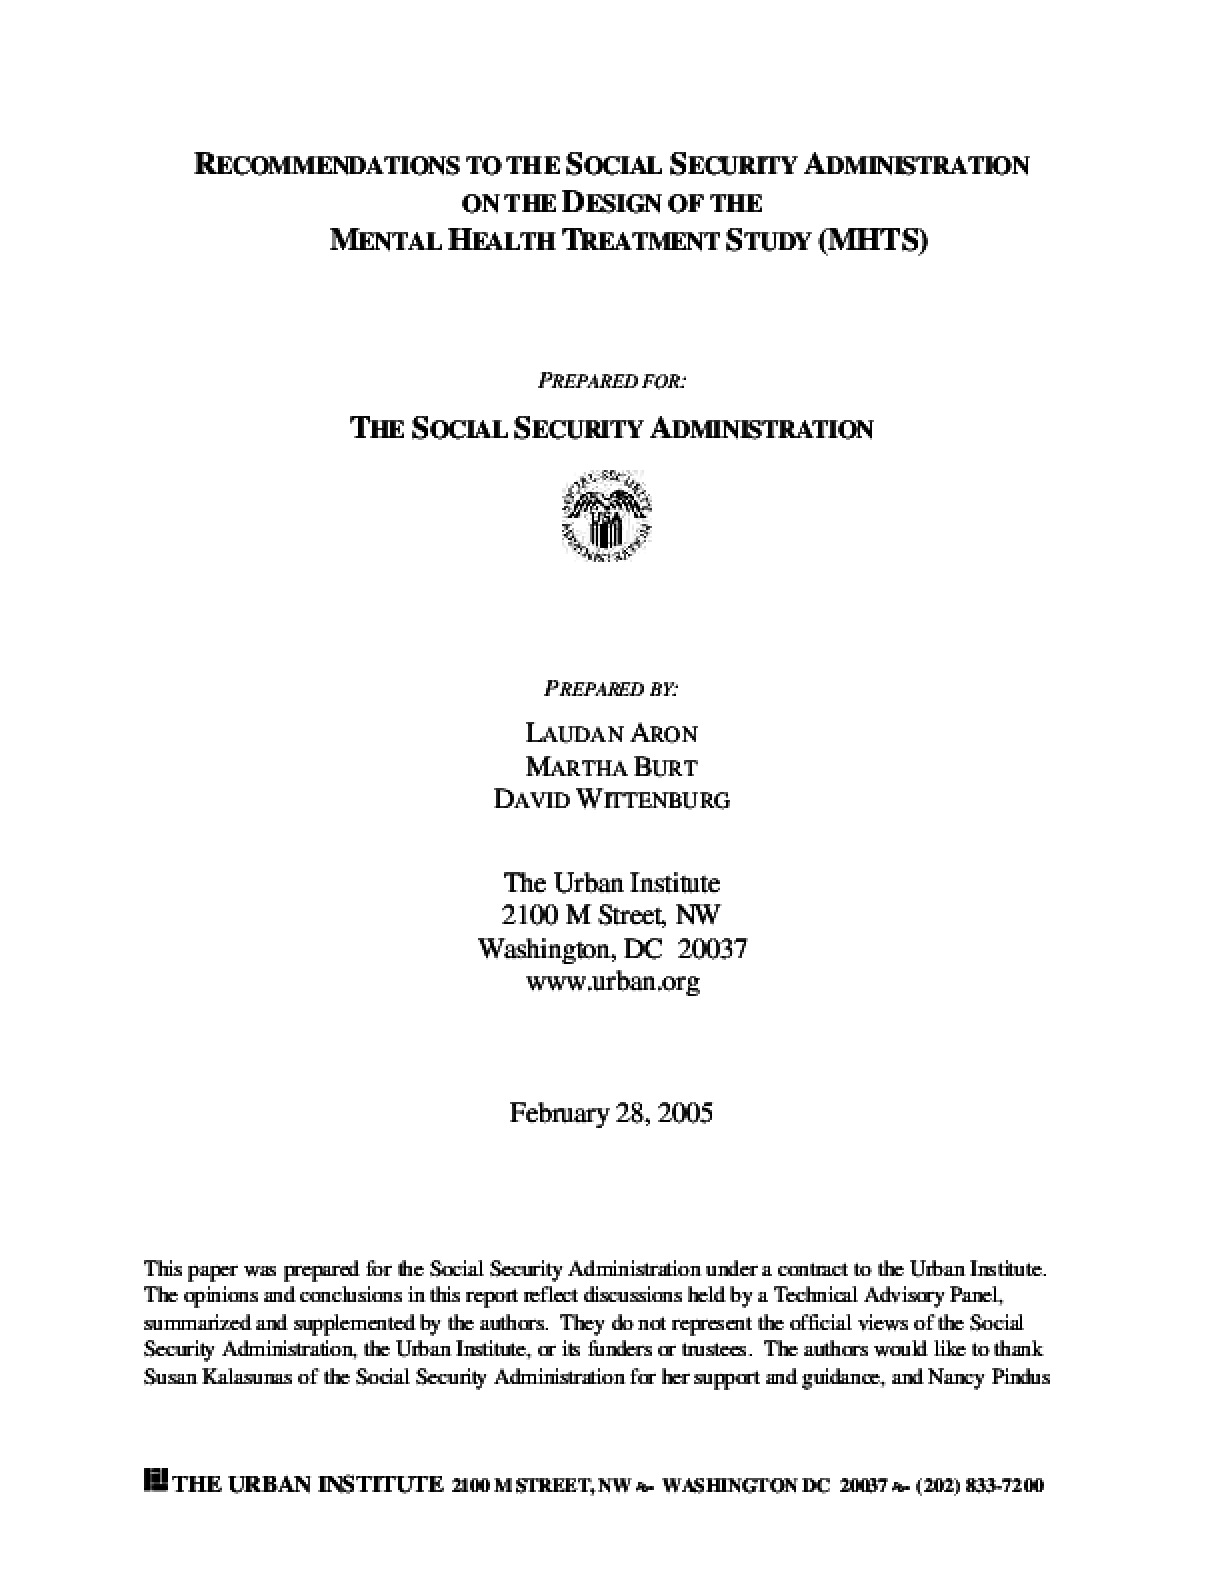 Recommendations to the Social Security Administration on the Design of the Mental Health Treatment Study